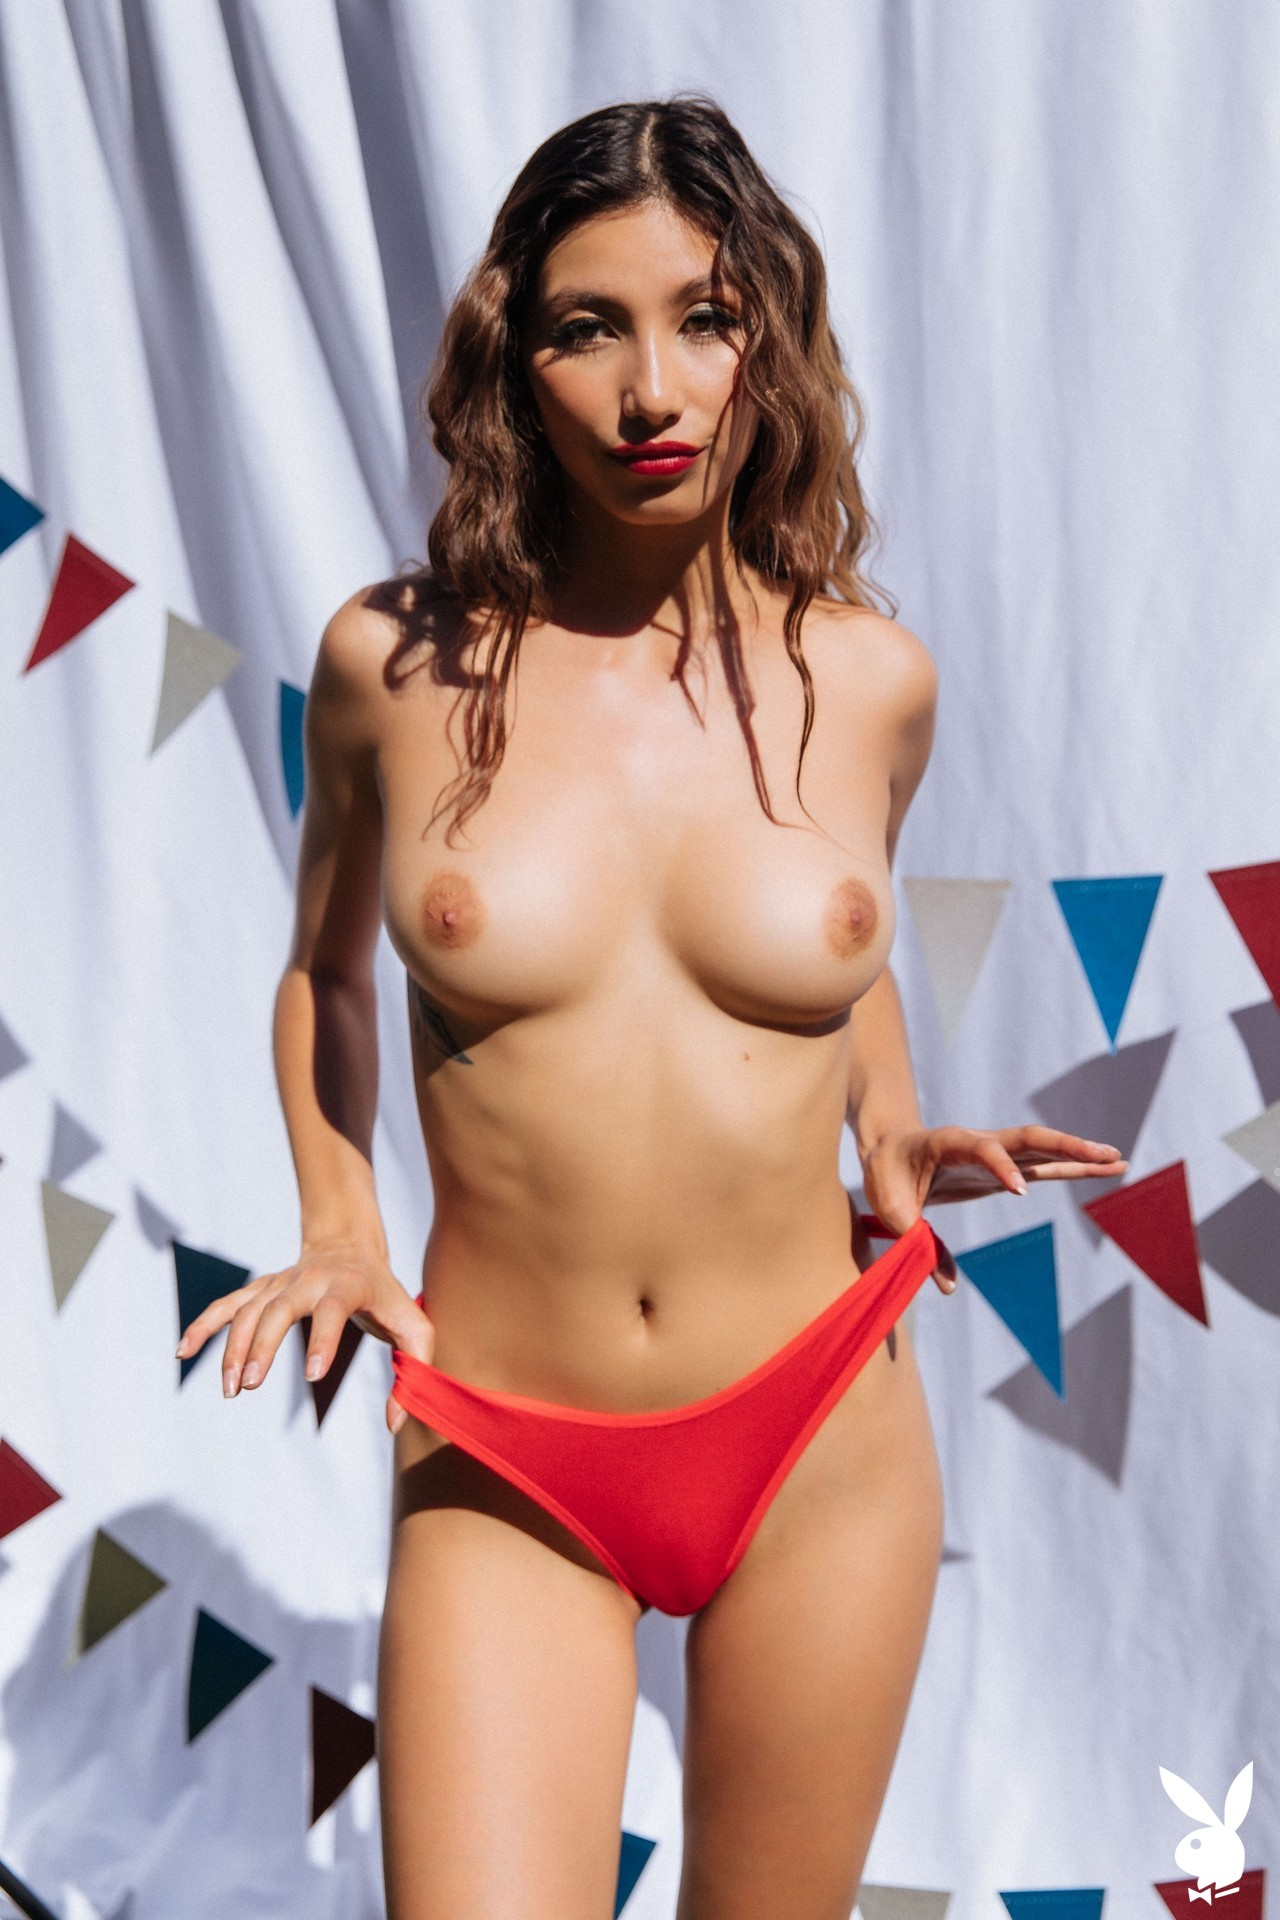 Dominique Lobito In Miss Independent Playboy Plus (14)